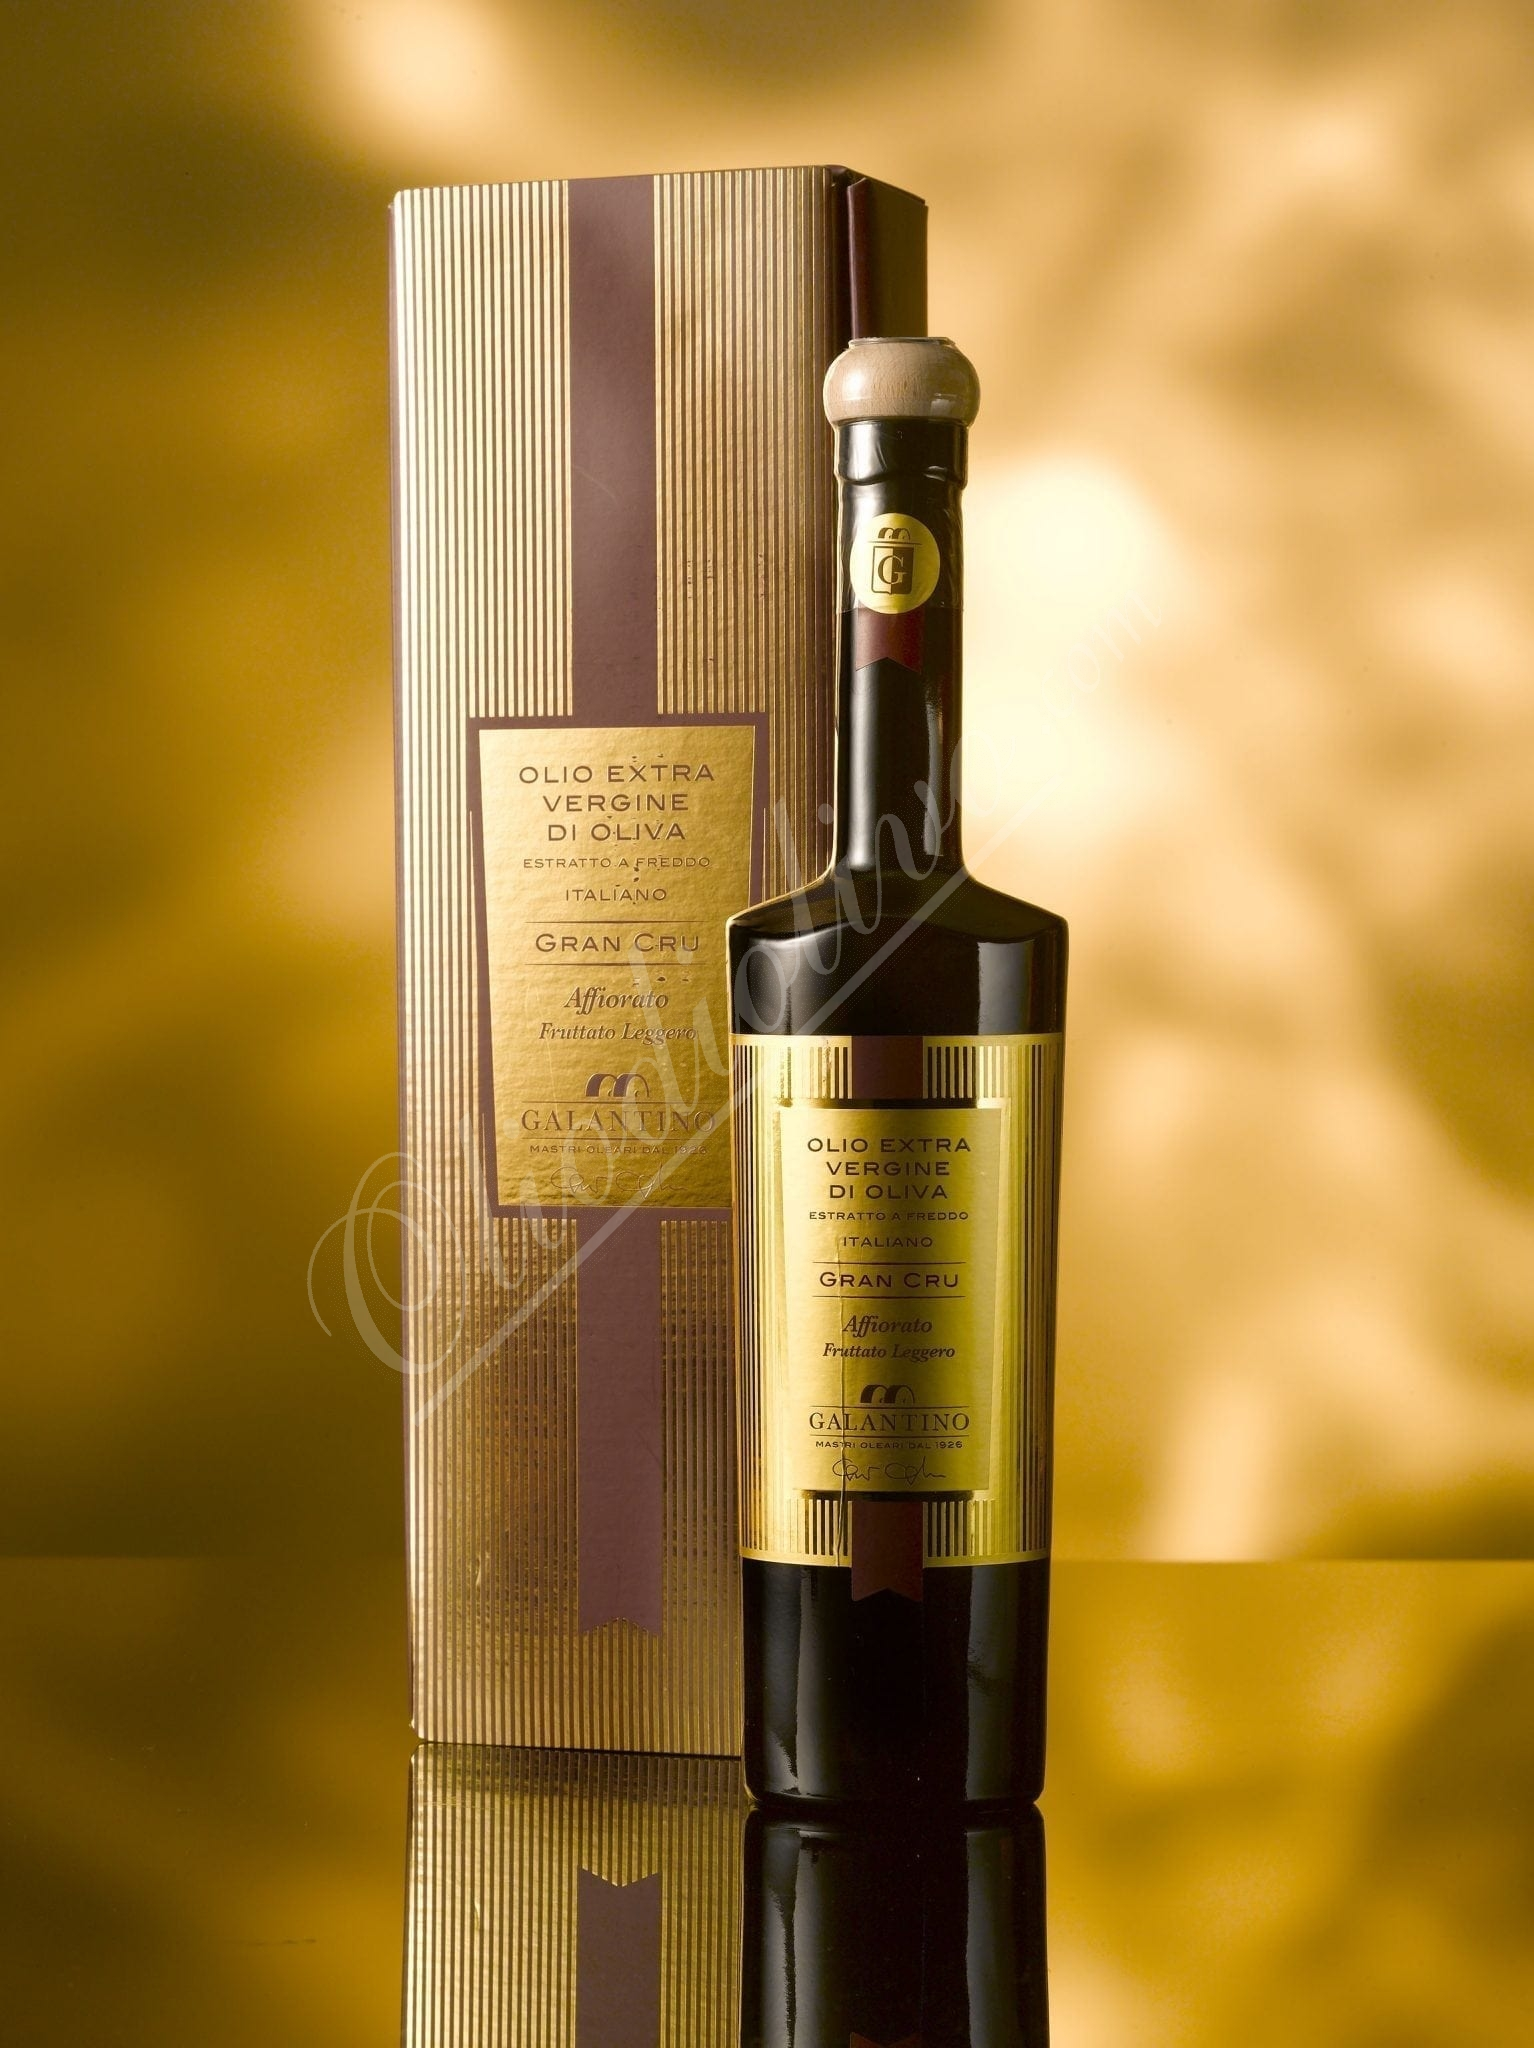 Grand cru in box, Galantino, limited edition olive oil, Puglia, 500ml